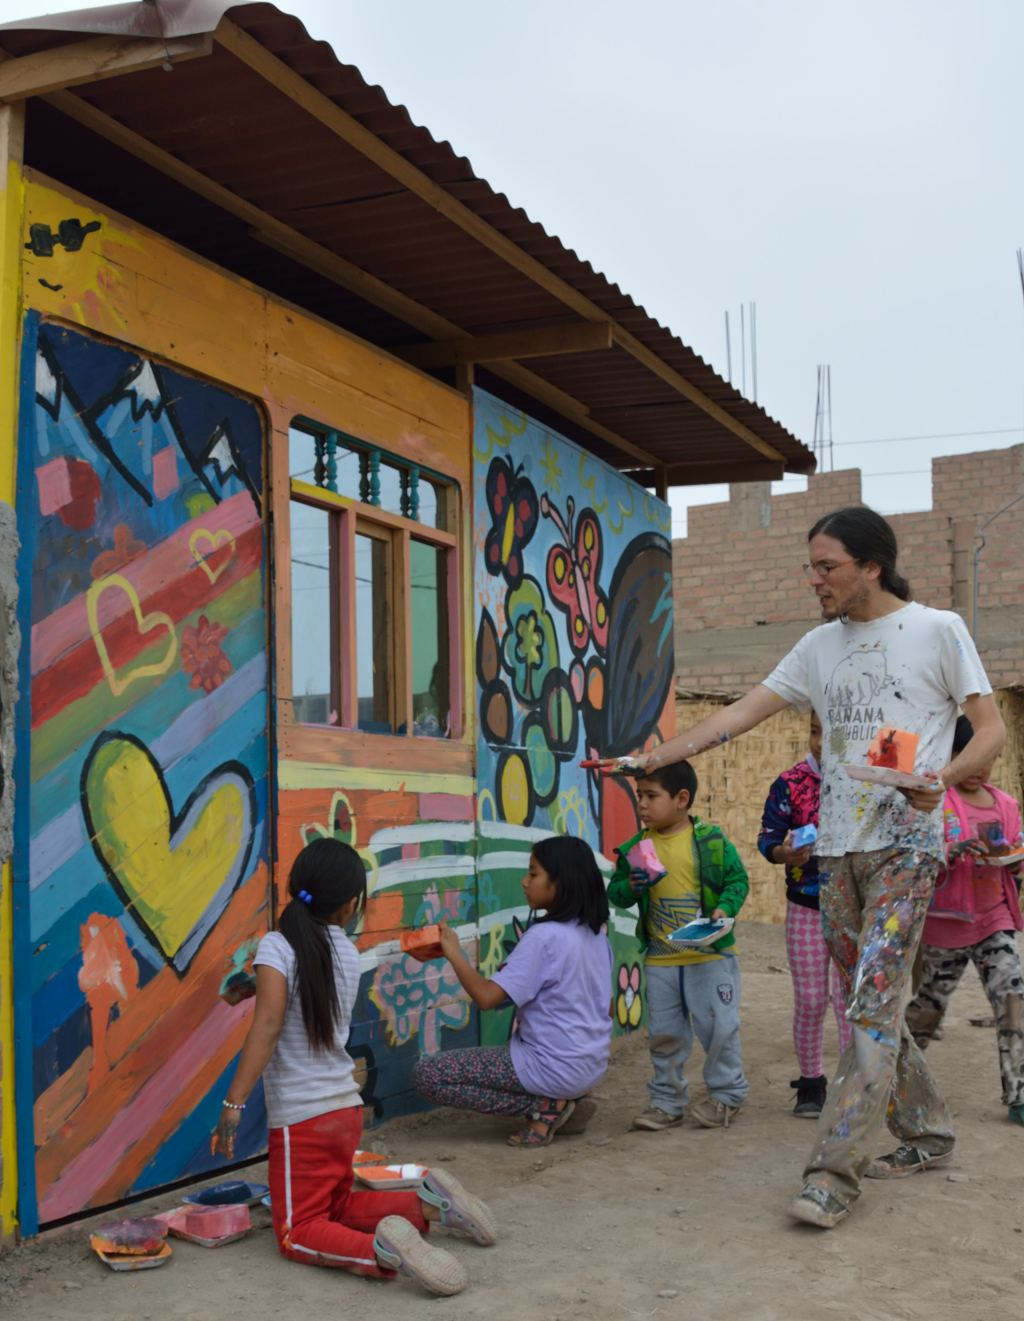 Mauricio Delgado and the Muralist Brigade work with children on a mural about literacy in San Lorenzo. By Steven T. Zech.